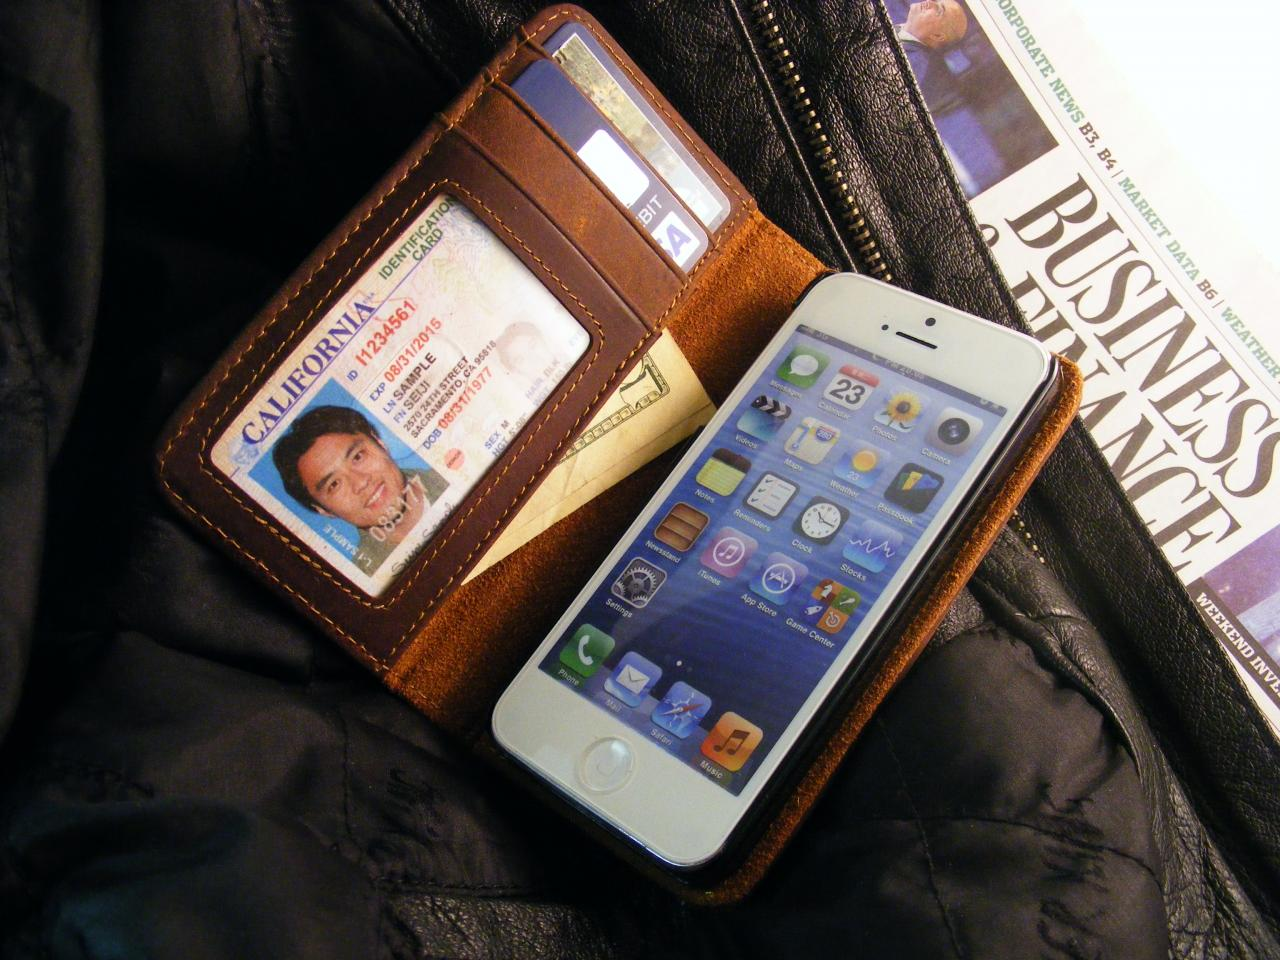 Leather Premium Pocket Book Case for iPhone 4 or iPhone 5, 5s, or 5c